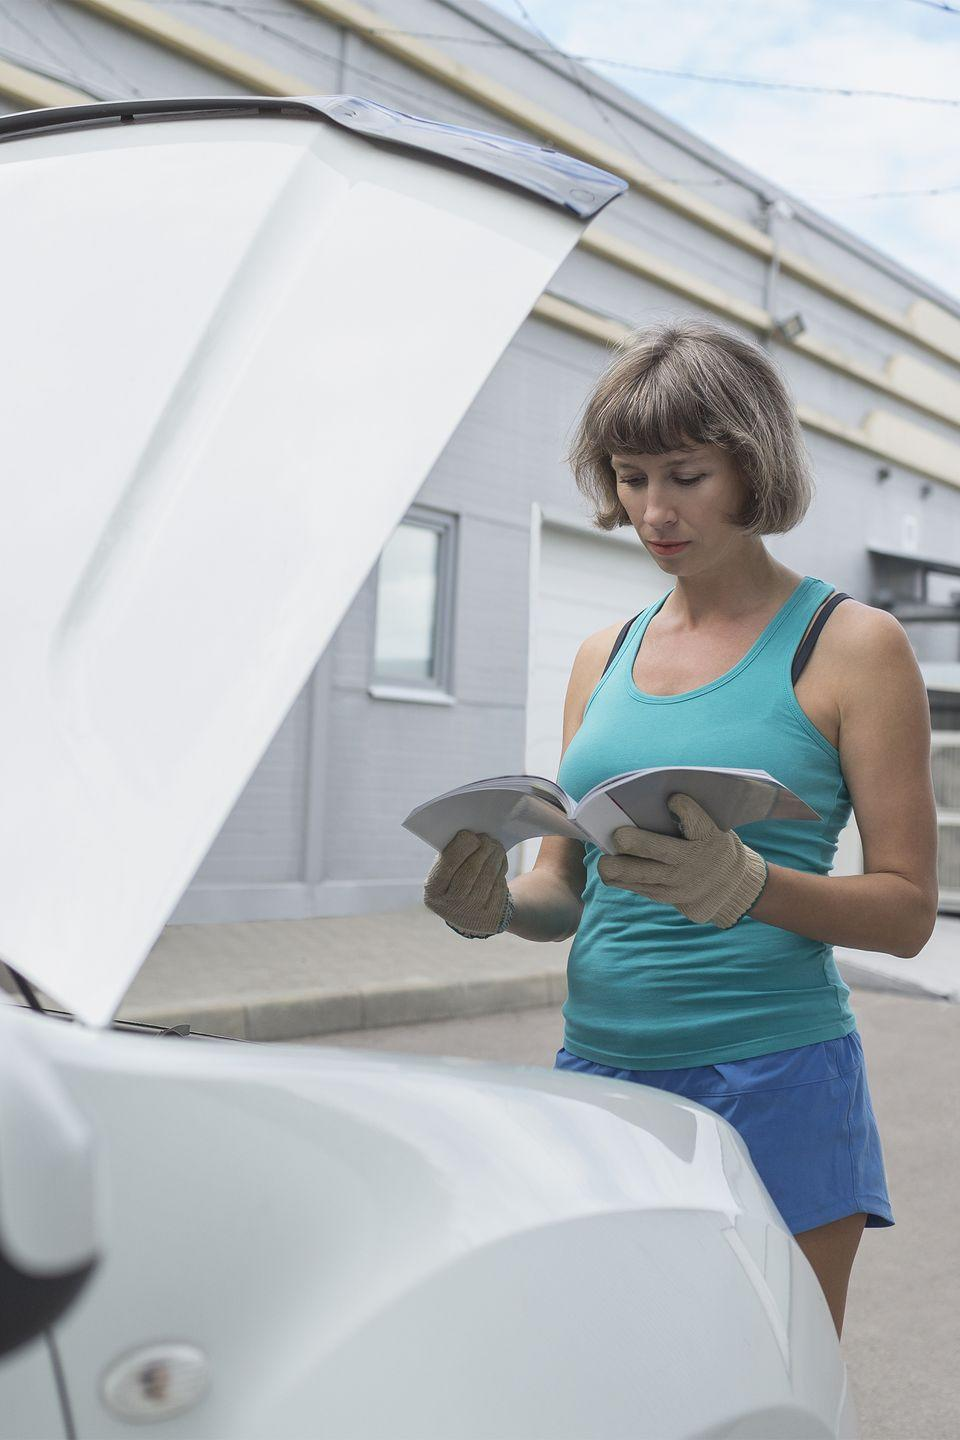 """<p>Free up that precious glove compartment space by stowing owner's manuals in the passenger seat's back <a href=""""https://www.womansday.com/style/fashion/a53491/small-pocket-inside-pocket-jeans-use-whats-it-for/"""" rel=""""nofollow noopener"""" target=""""_blank"""" data-ylk=""""slk:pocket"""" class=""""link rapid-noclick-resp"""">pocket</a>.</p>"""